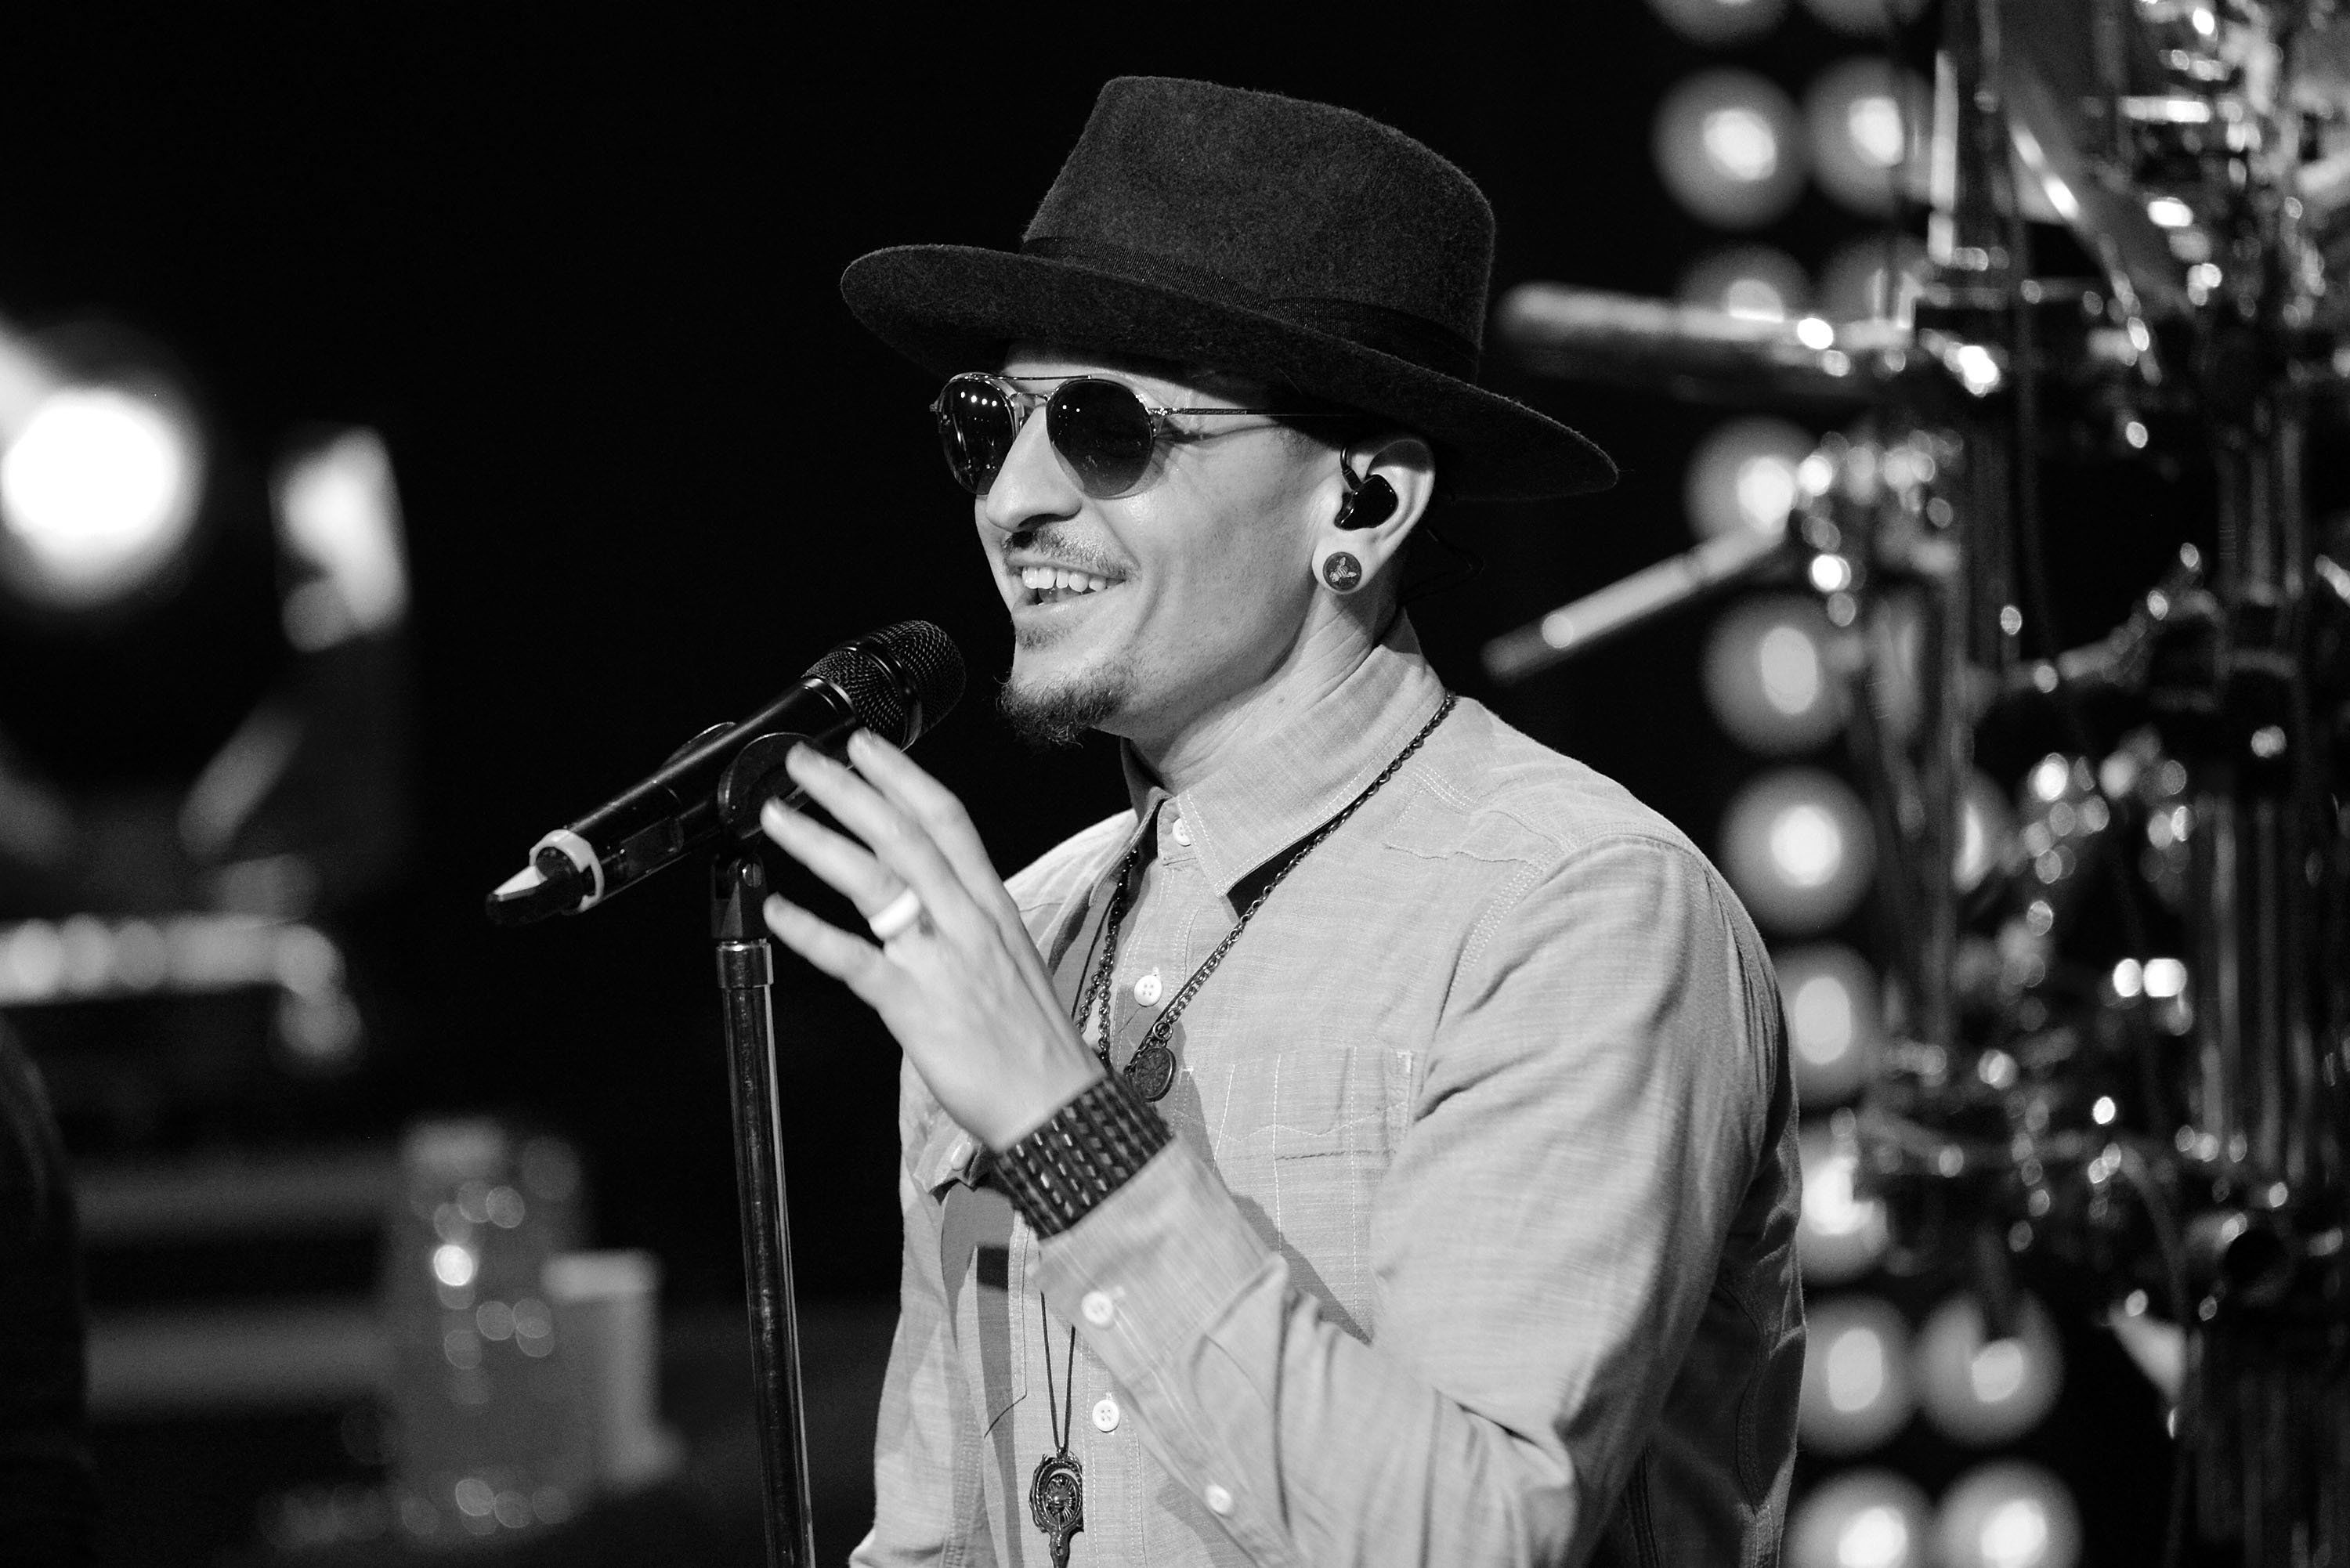 BURBANK, CA - MAY 22:  (EDITORS NOTE: Image has been converted to black and white) Singer Chester Bennington of Linkin Park performs onstage during the band's 'One More Light' album release party at the iHeartRadio Theater on May 22, 2017 in Burbank, California.  (Photo by Scott Dudelson/WireImage)